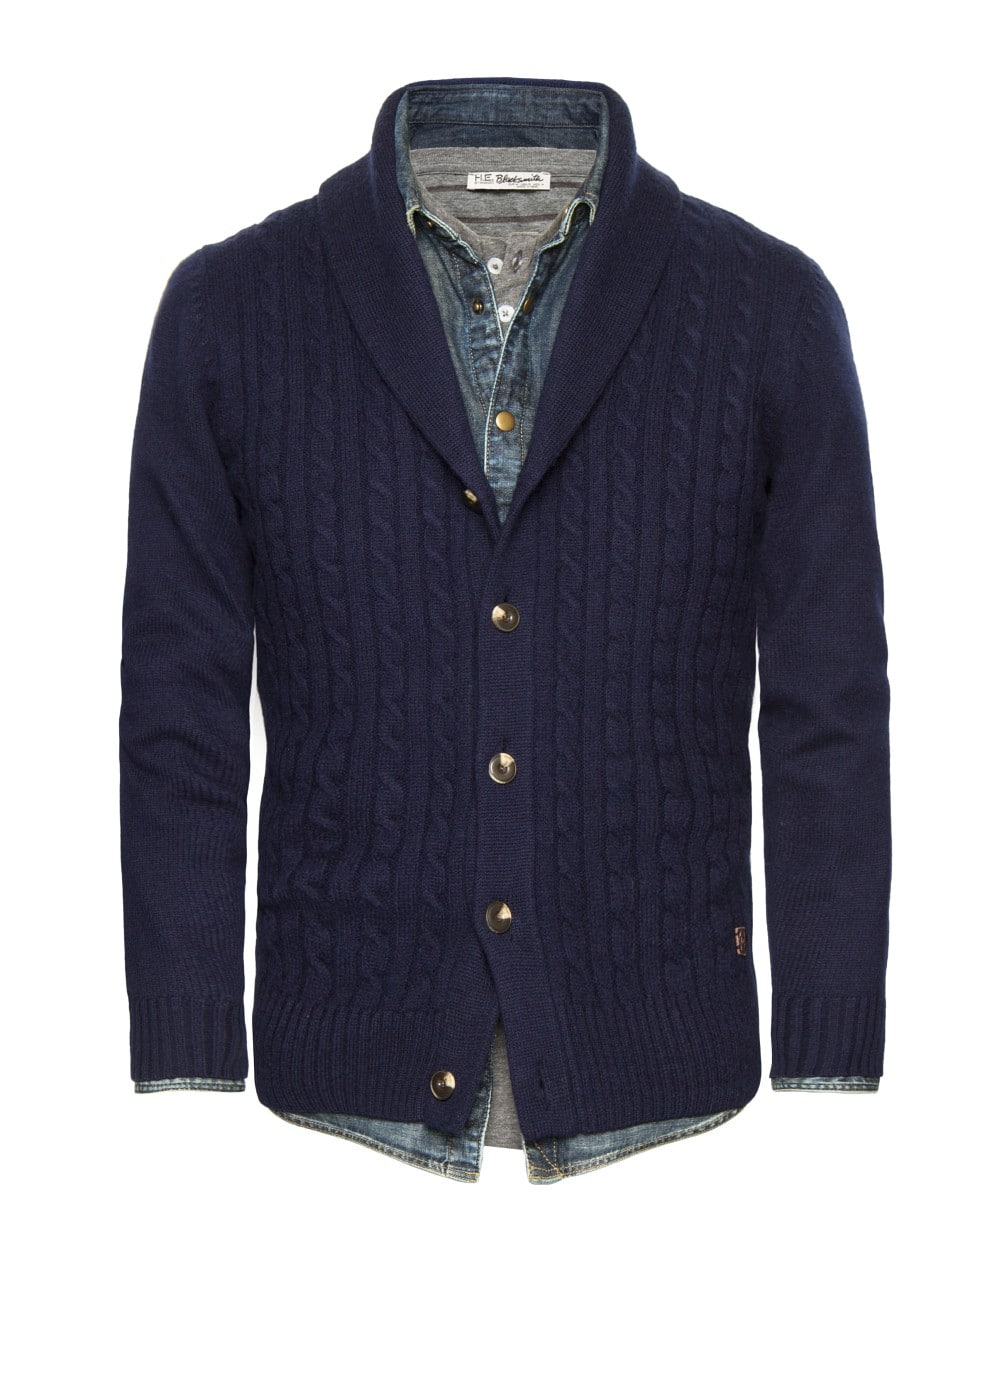 Premium cable-knit wool cardigan